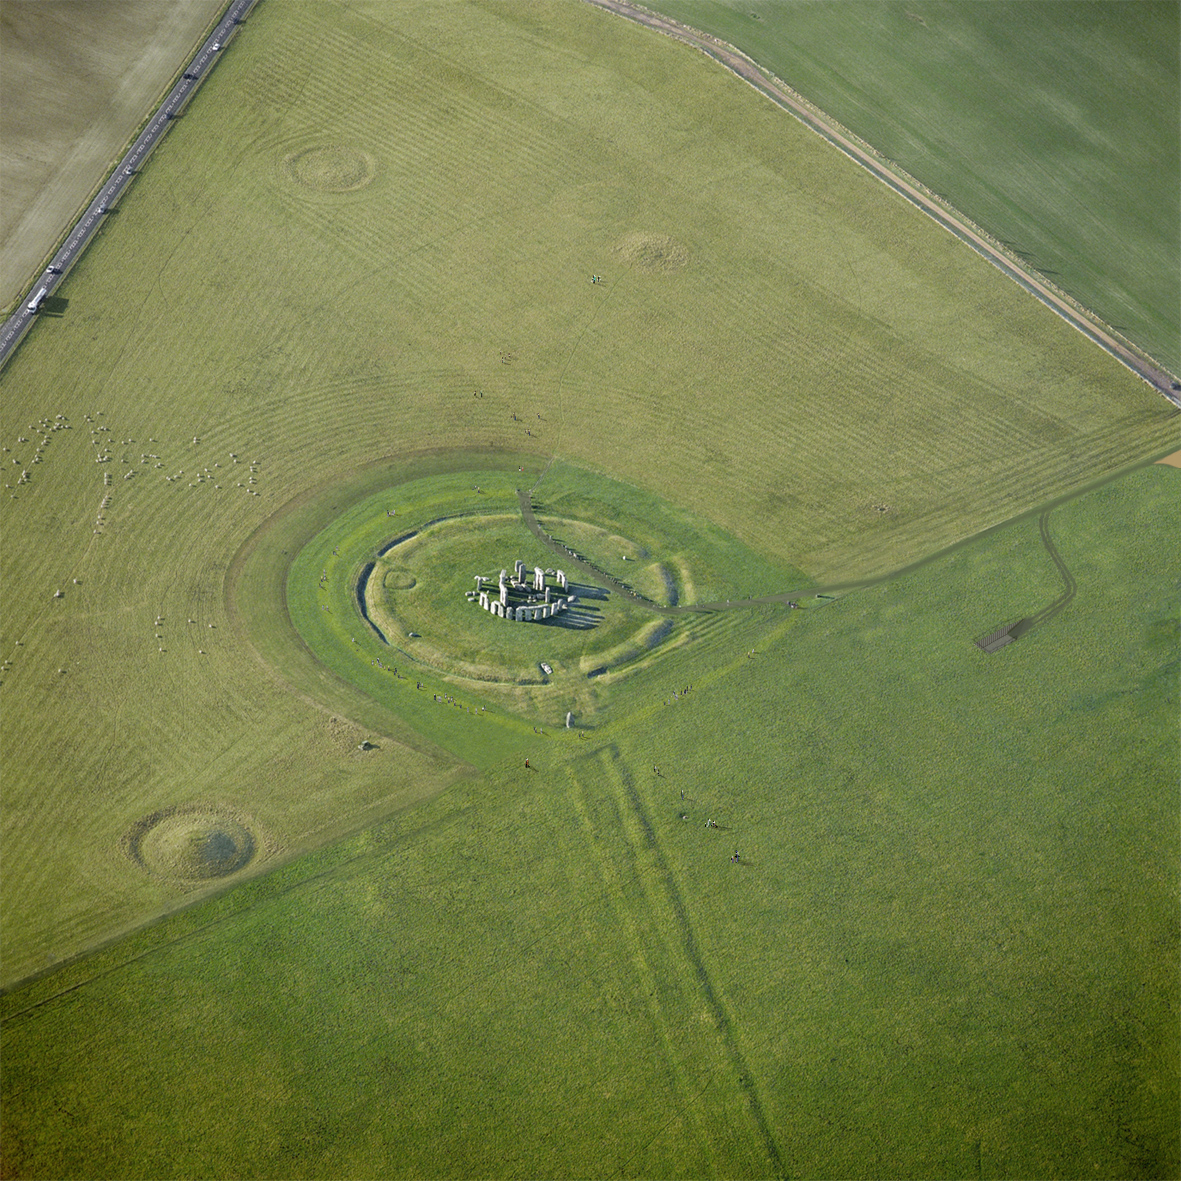 Stonehenge aerial view, photo courtesy of Denton Corker Marshall